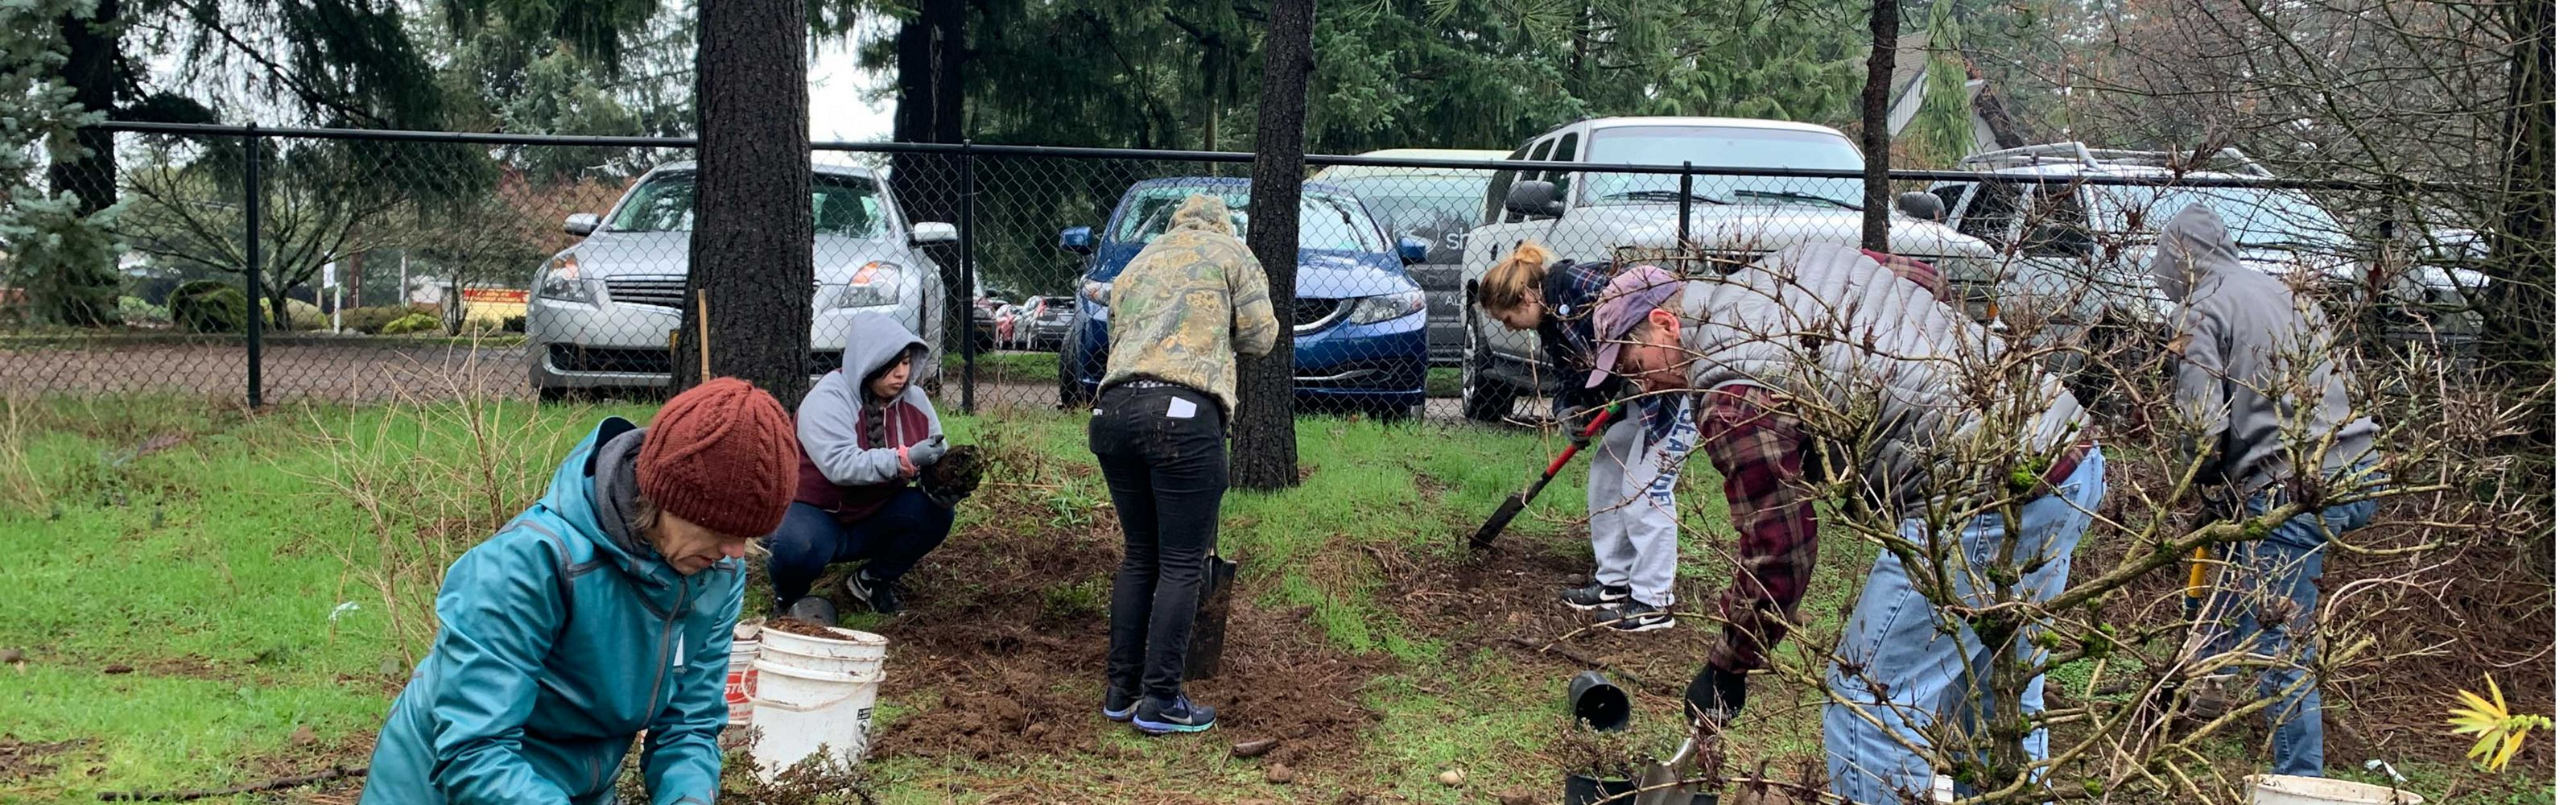 Volunteer planting native trees and shrubs in Portland, OR